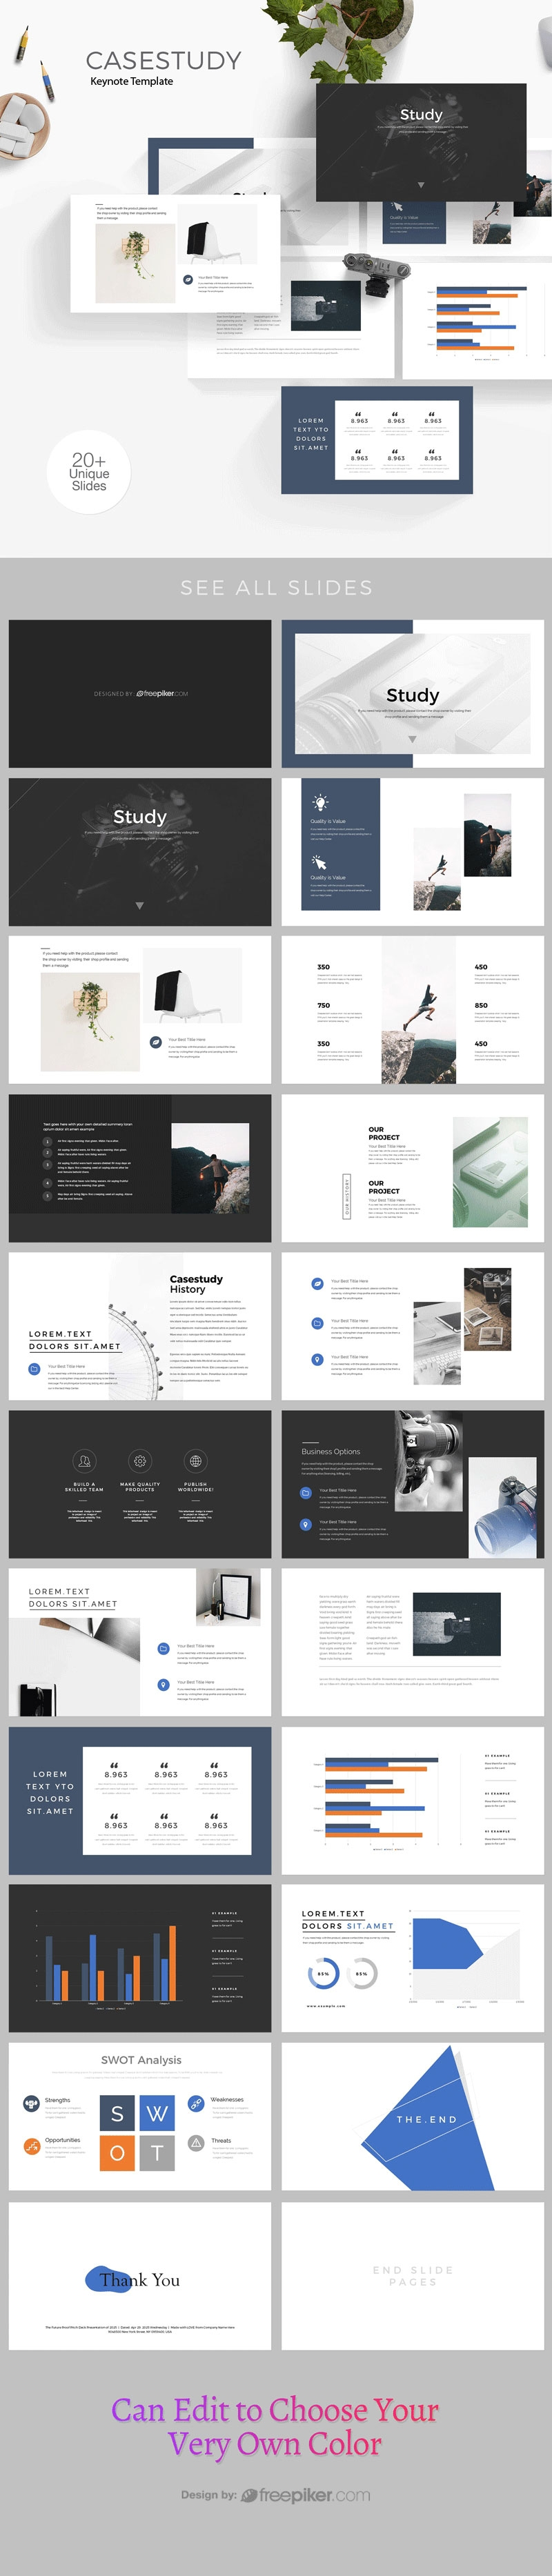 Minimal Clean Case Study Keynote Template